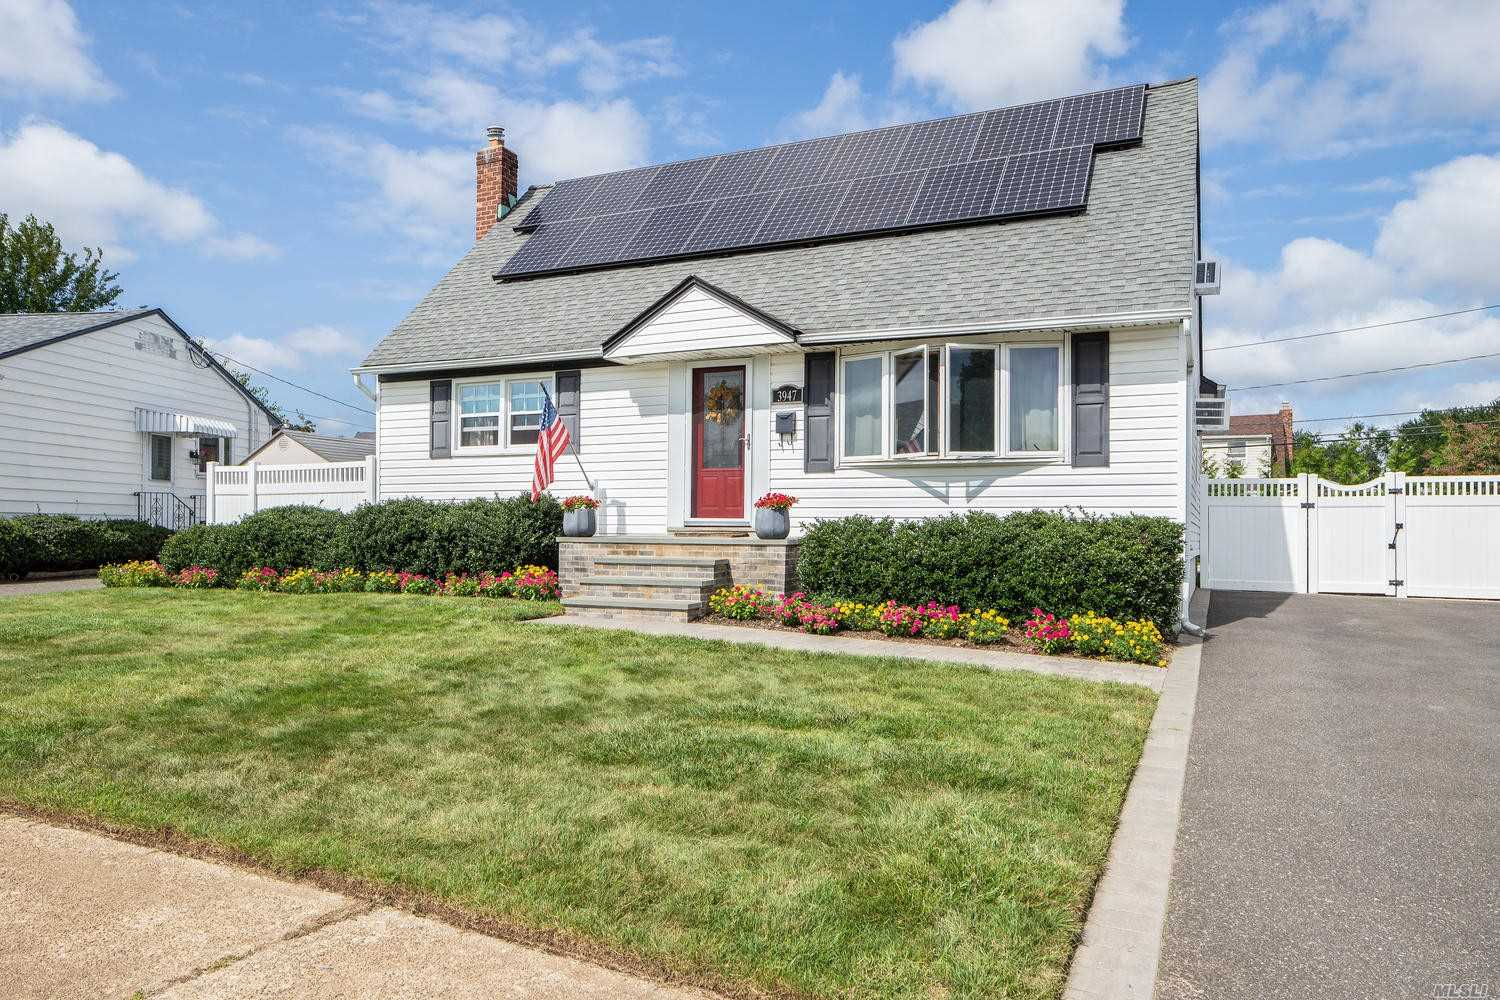 Just in time for the summer! This beautiful 4 BR move in Cape features a brand new heated inground pool. The perfect backyard for relaxation or BBQ's. Updated eat in kitchen, updated bathroom,  formal dining room and full basement. This one will go quick.